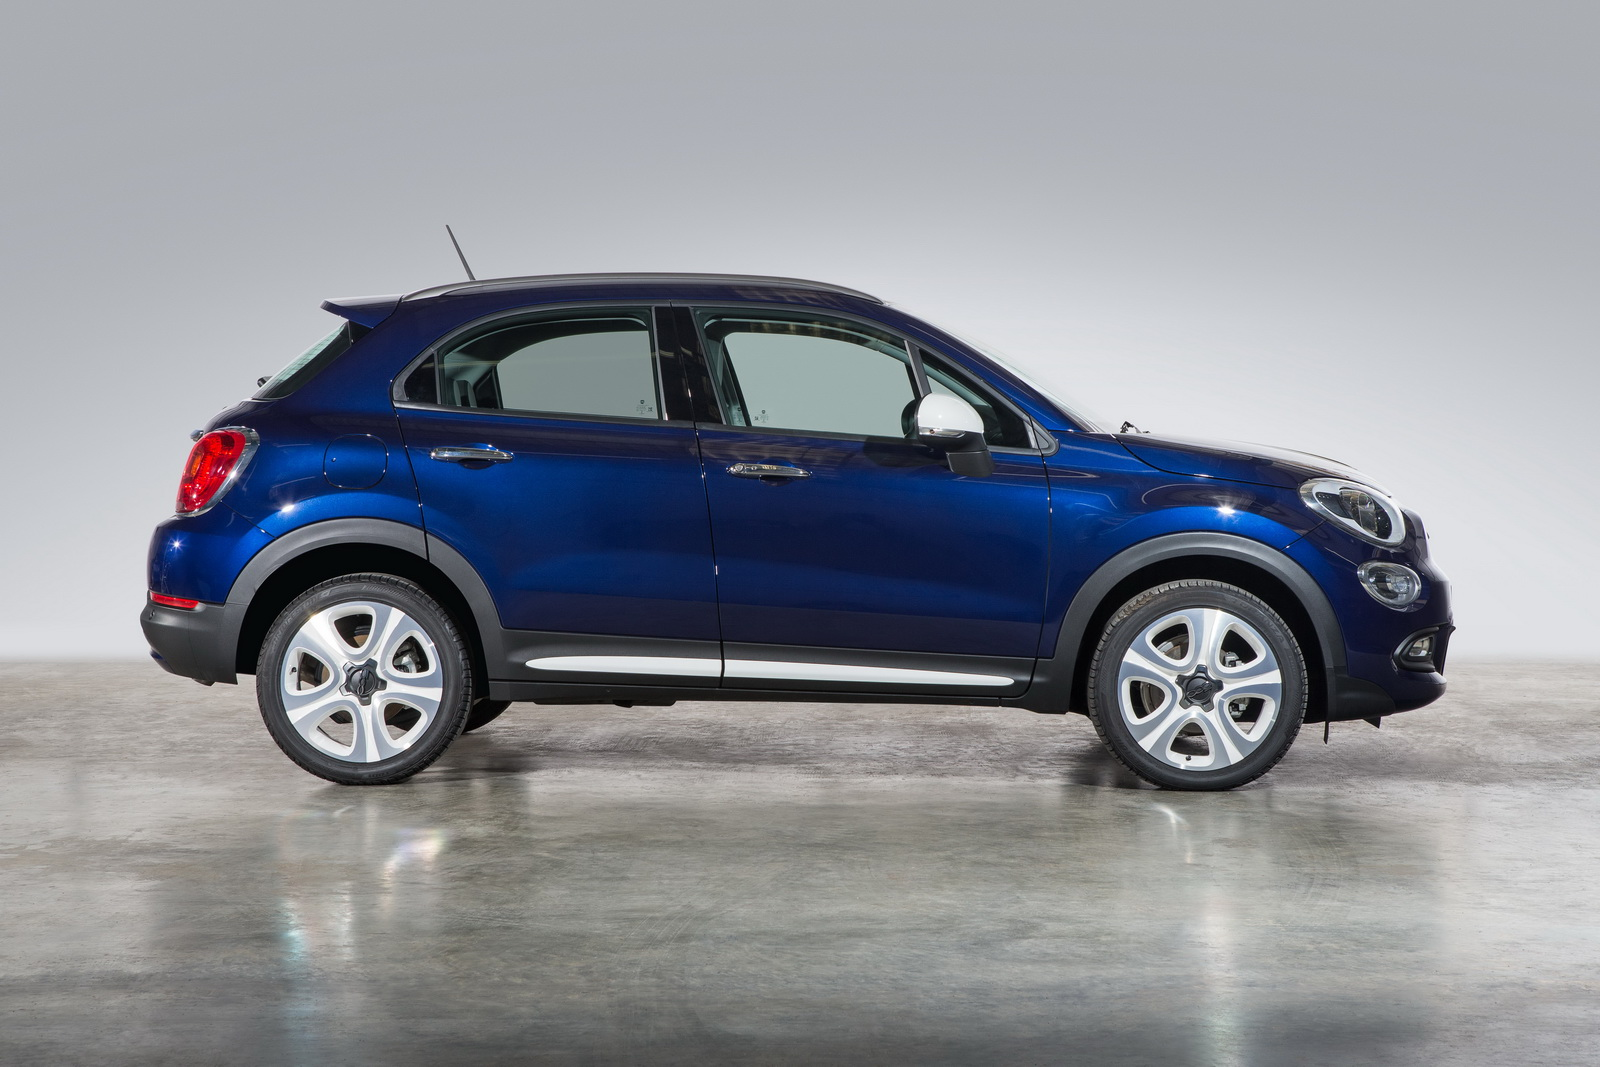 mopar launches range of accessories for fiat 500x in the uk carscoops. Black Bedroom Furniture Sets. Home Design Ideas